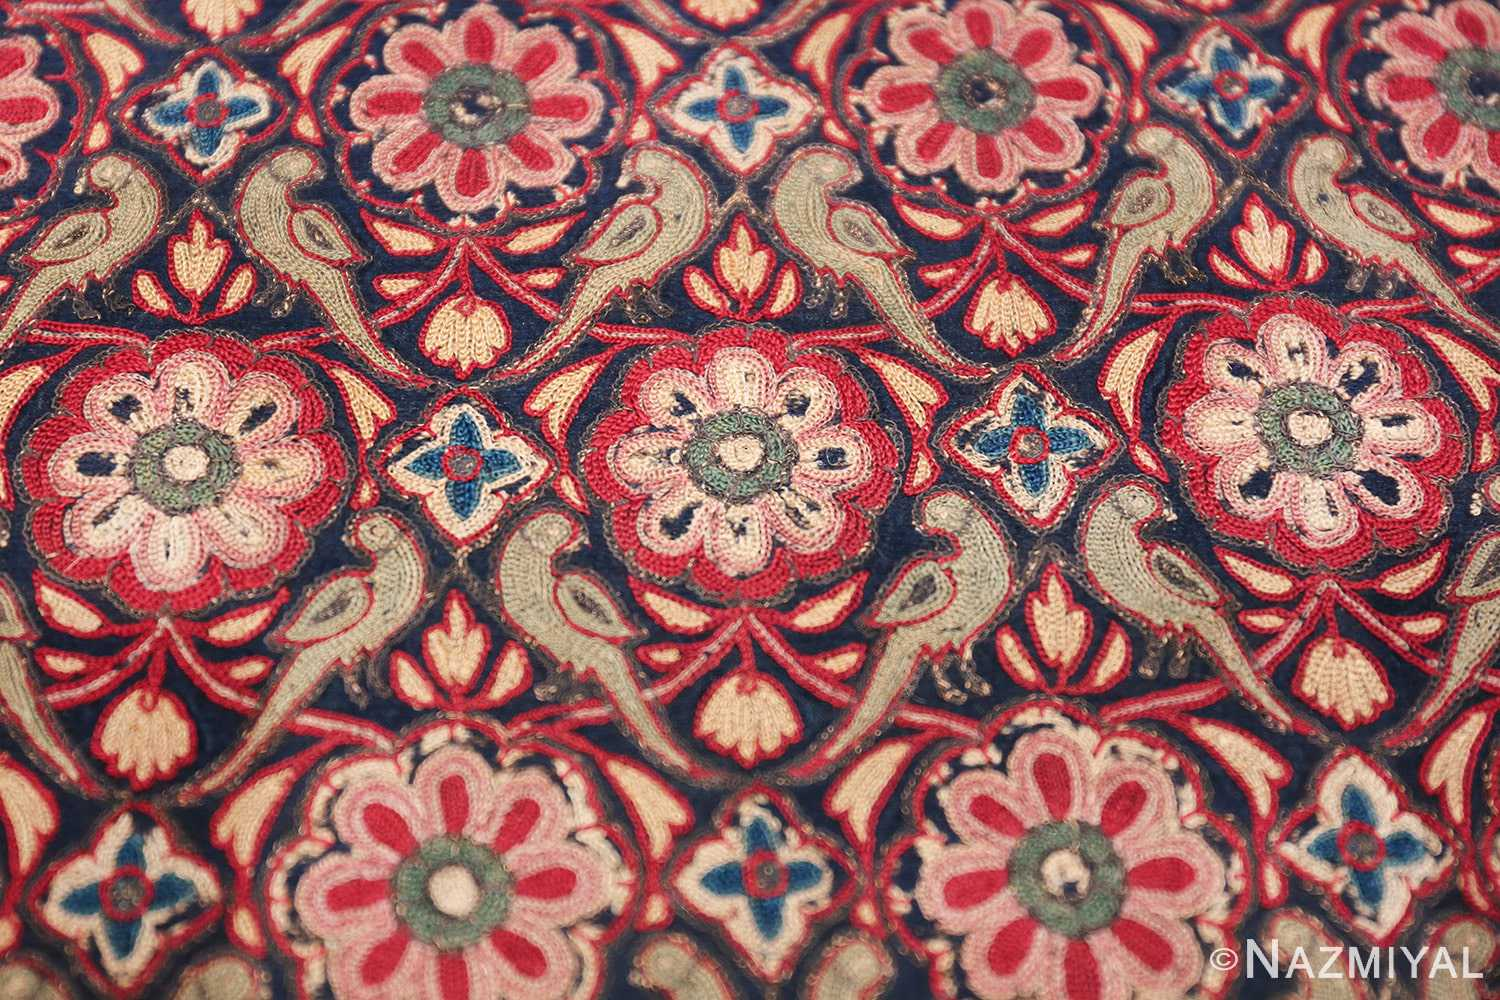 18th Century Indian Embroidery Textile 40364 Closeup Look Nazmiyal